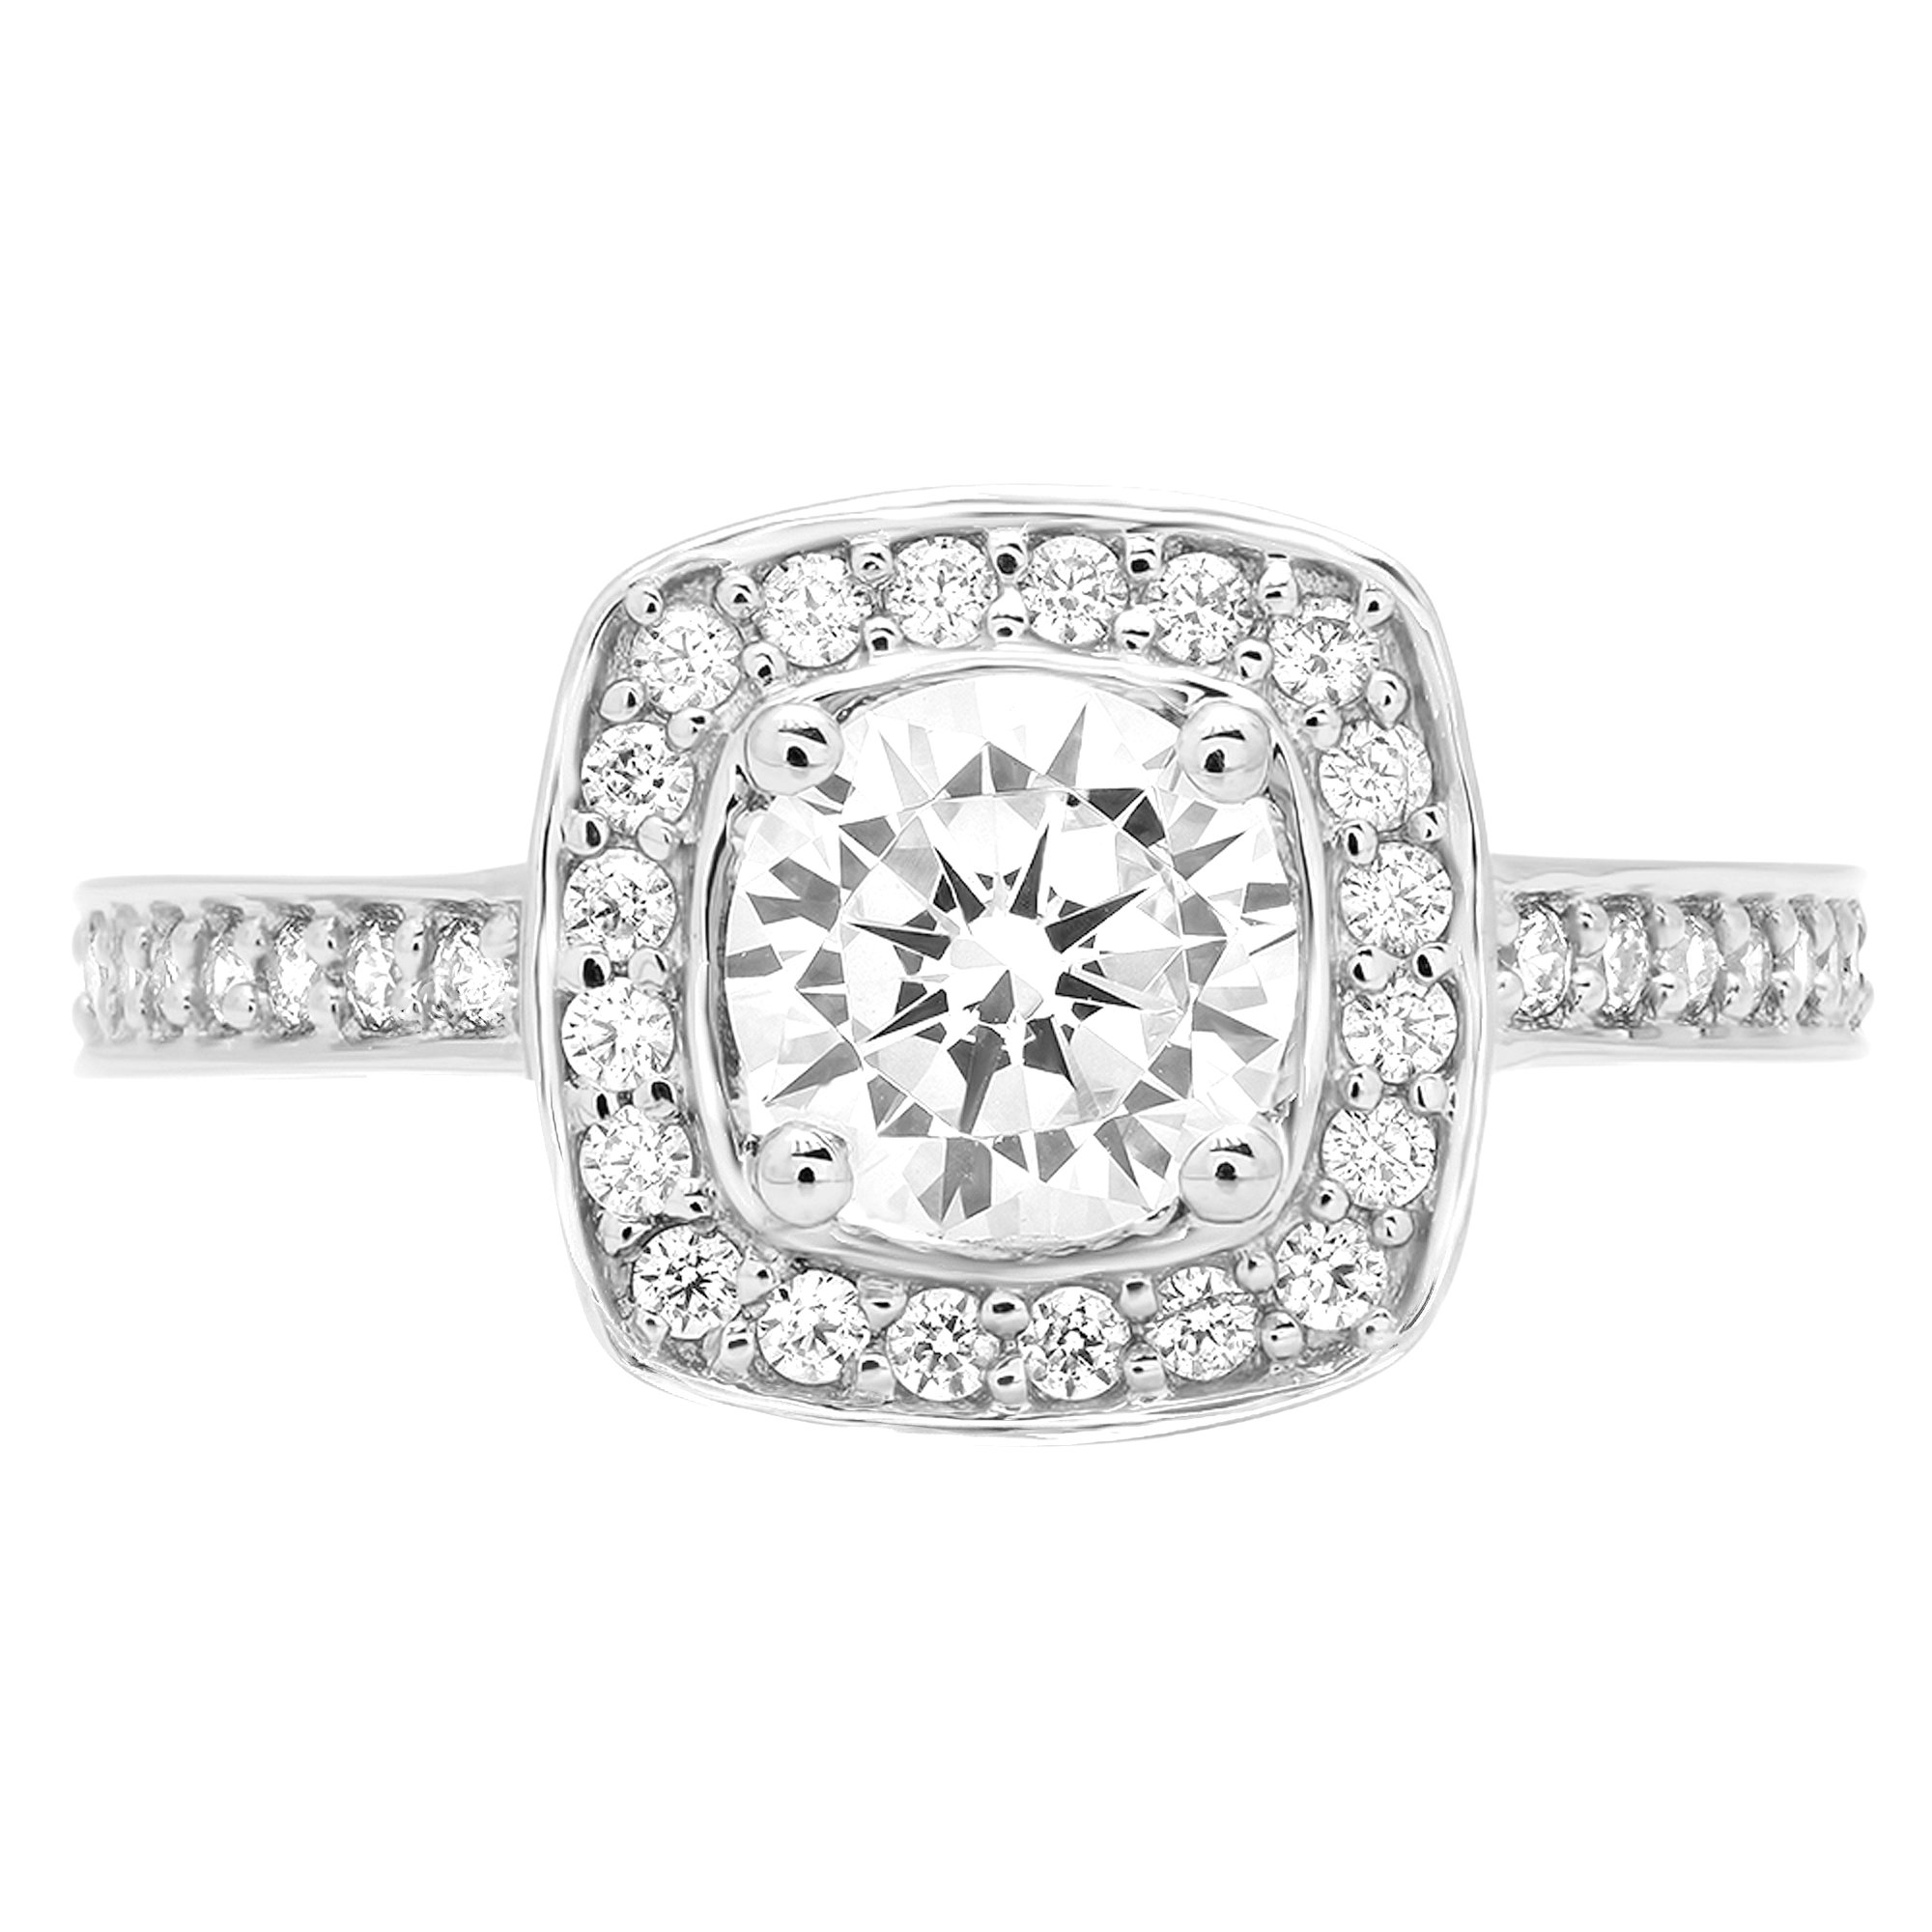 1.46 ct Brilliant Round Cut Halo Solitaire Statement Simulated Diamond Ring in Solid 14k White Gold for Women, 6.25